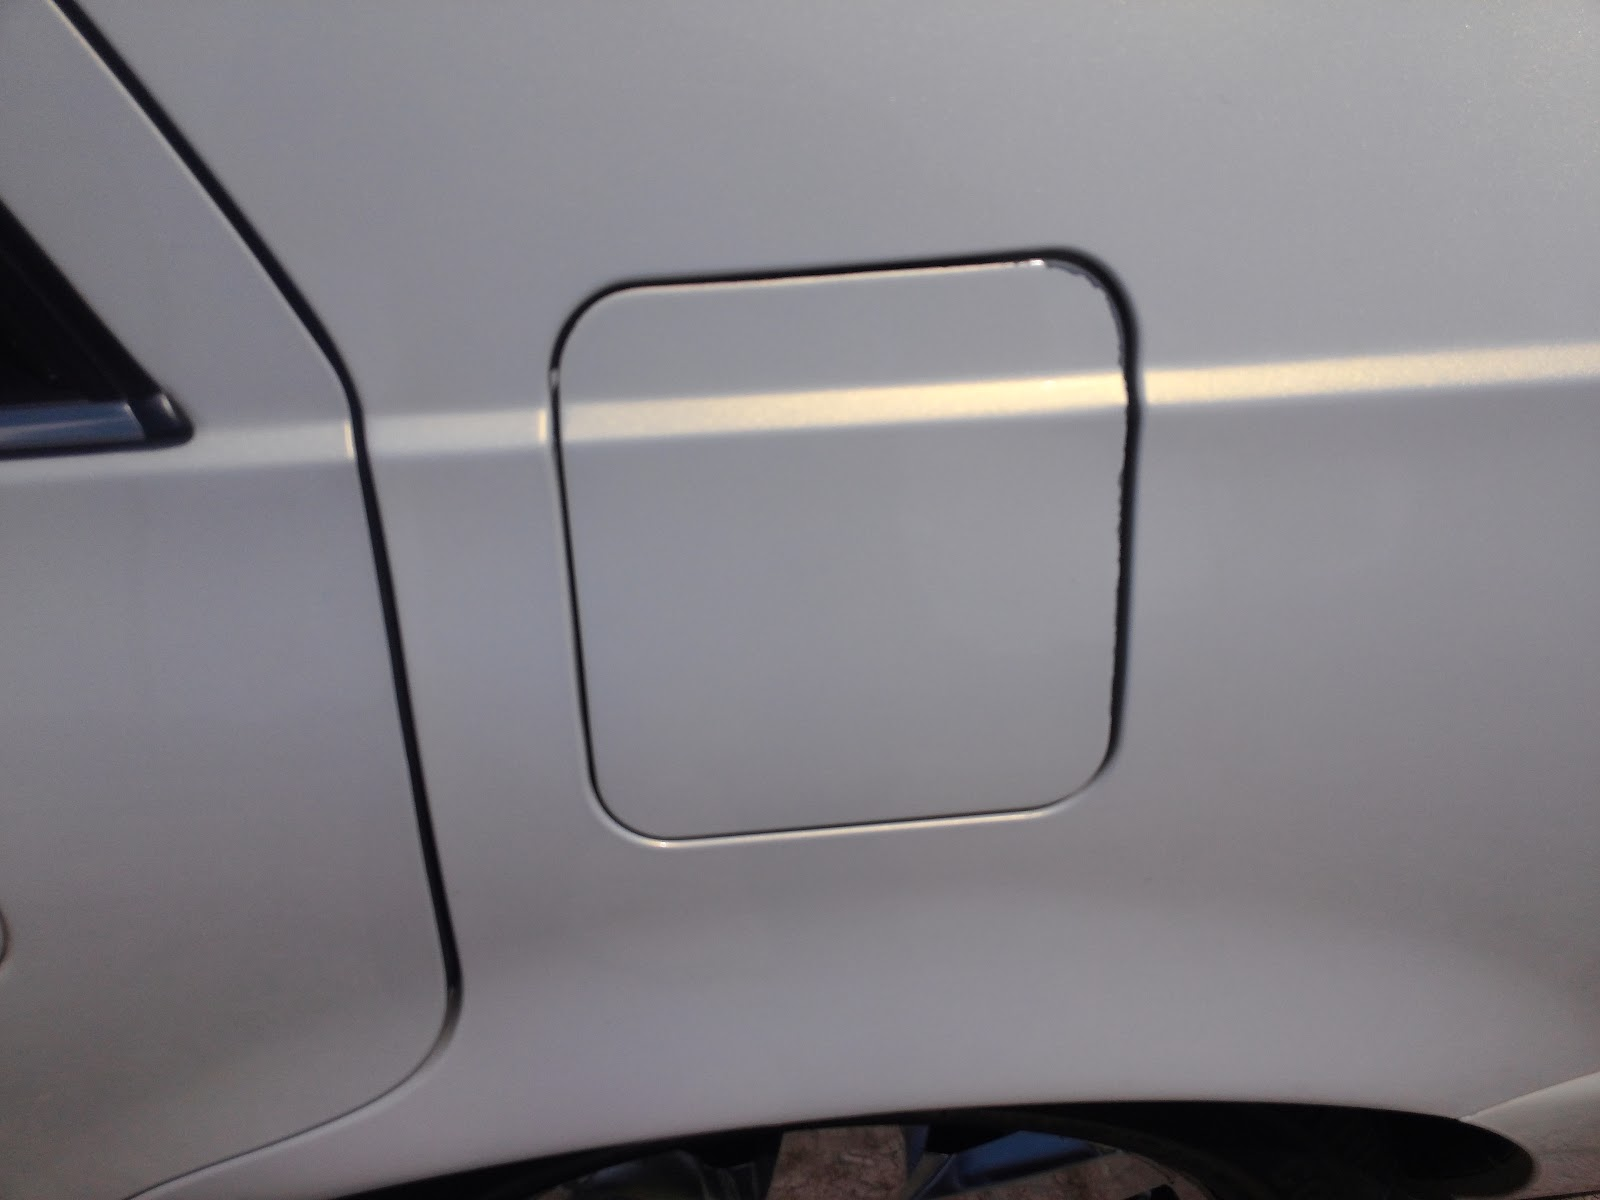 hight resolution of below the trunk also remained closed with the button pressed for it